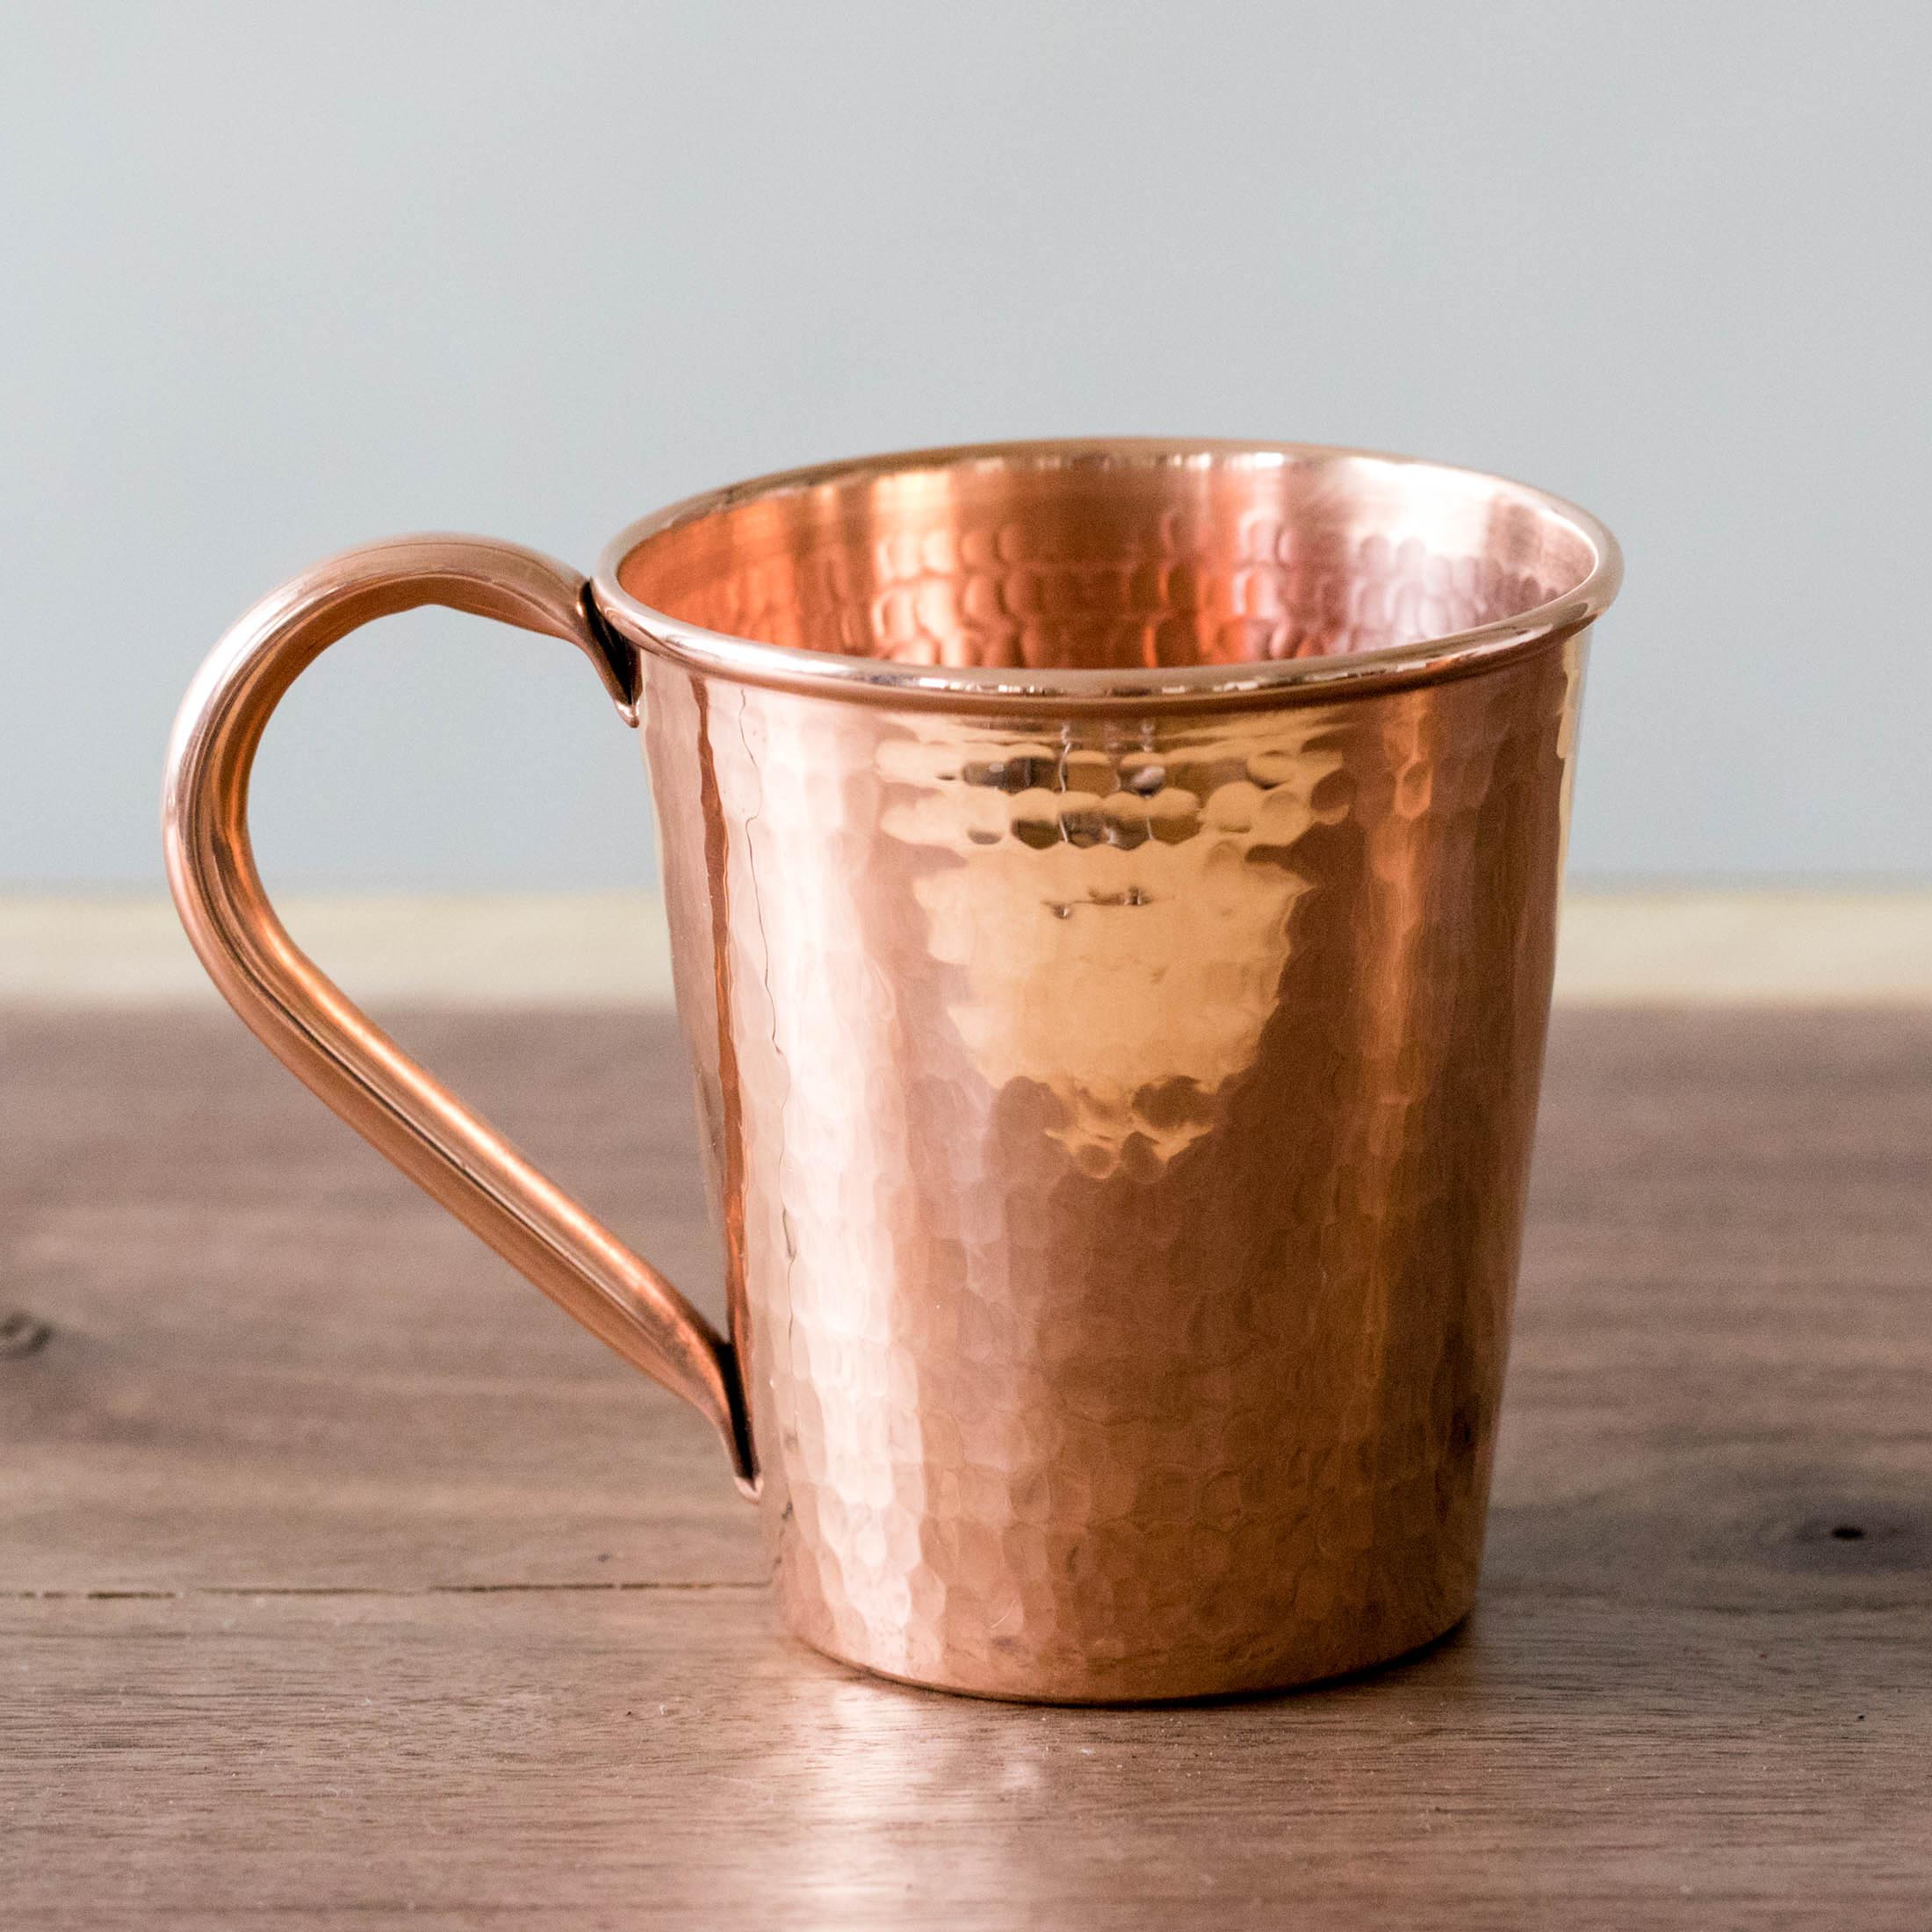 Hammered Copper Moscow Mule Mug with Copper Handle by Sertodo Copper (18 ounce)